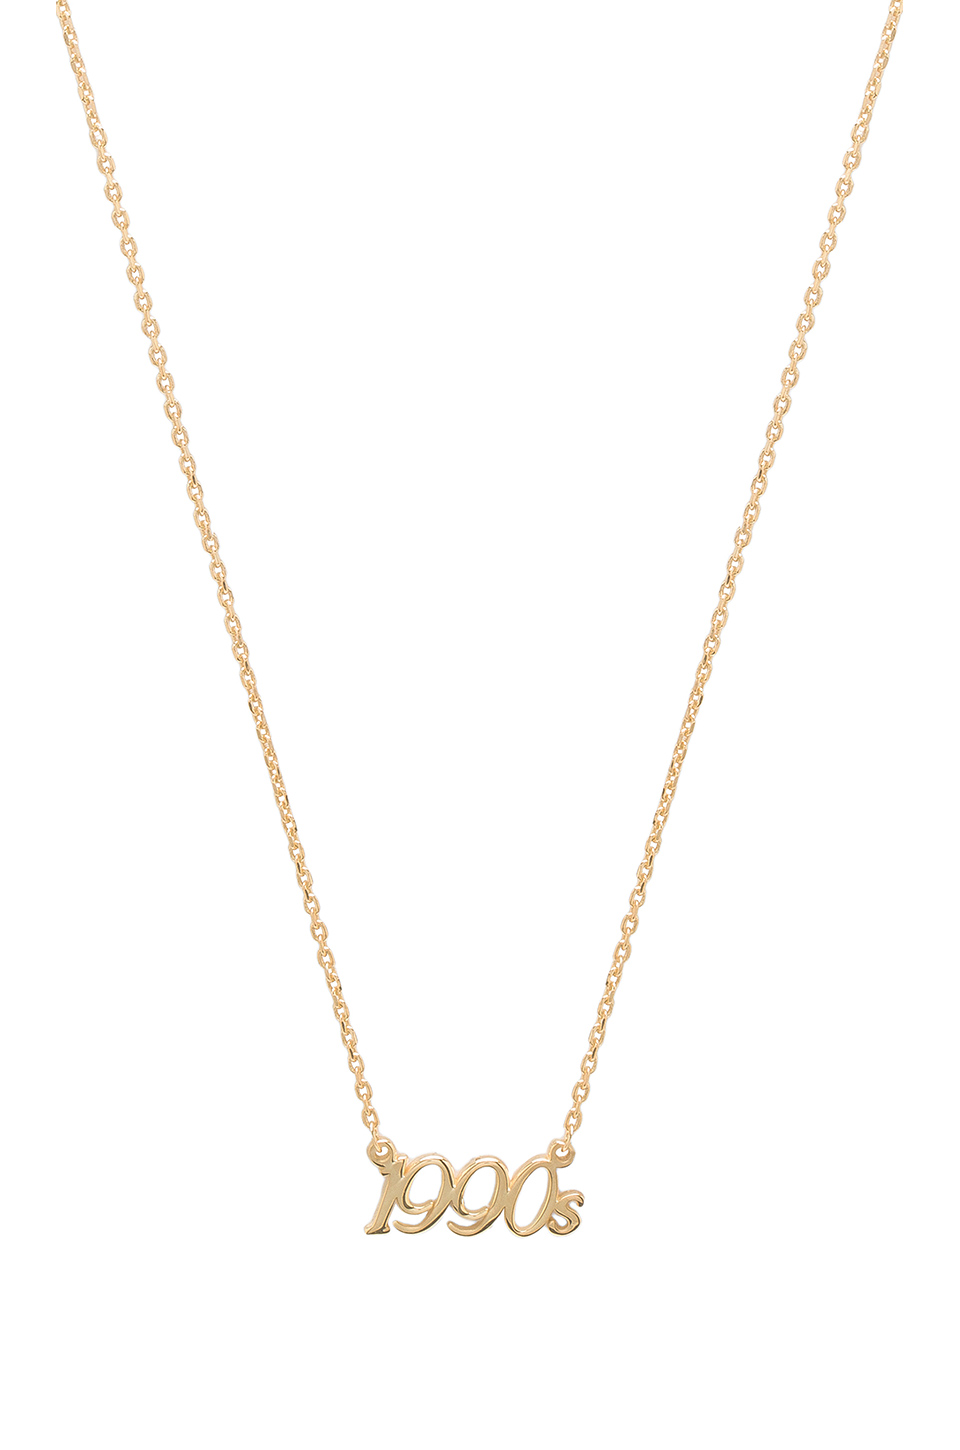 Natalie B Jewelry X 1990's Charm Necklace in Gold